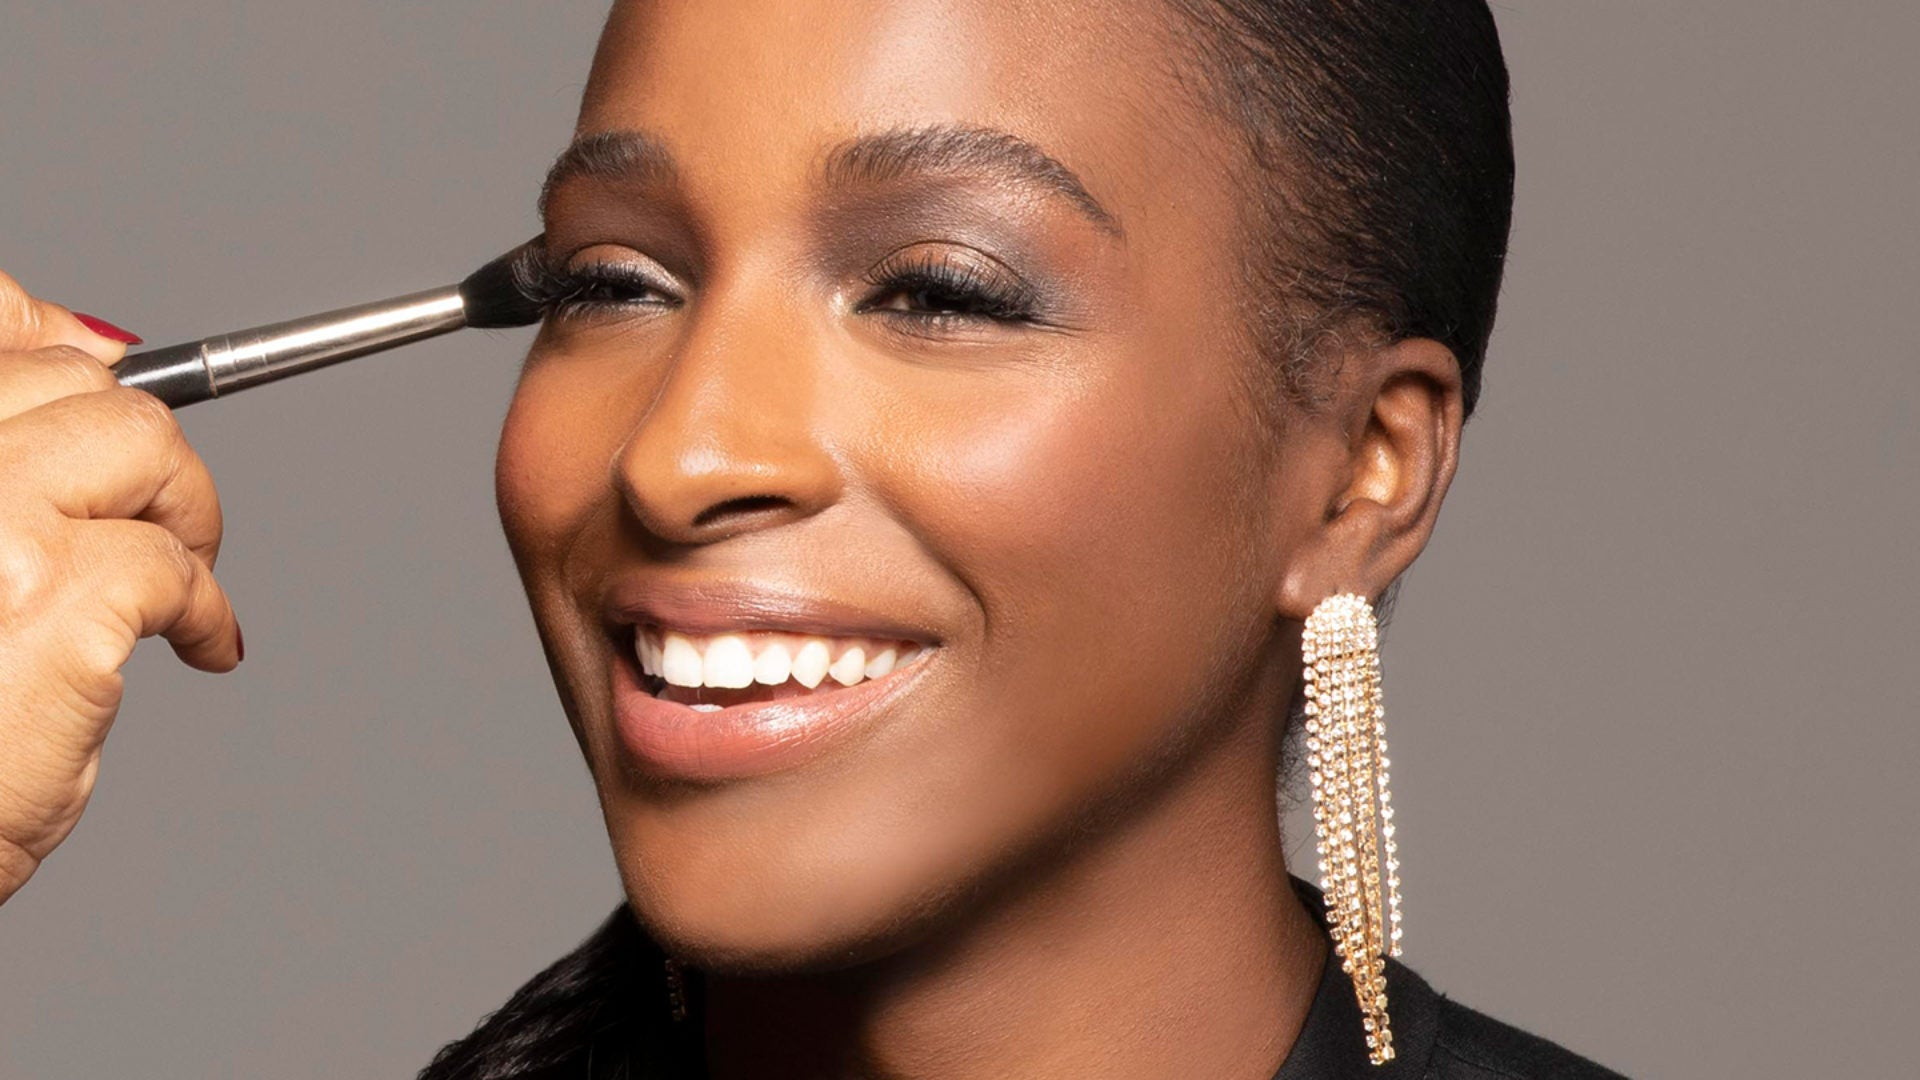 Be Comfortable in Your Own Skin: A Foundation Guide